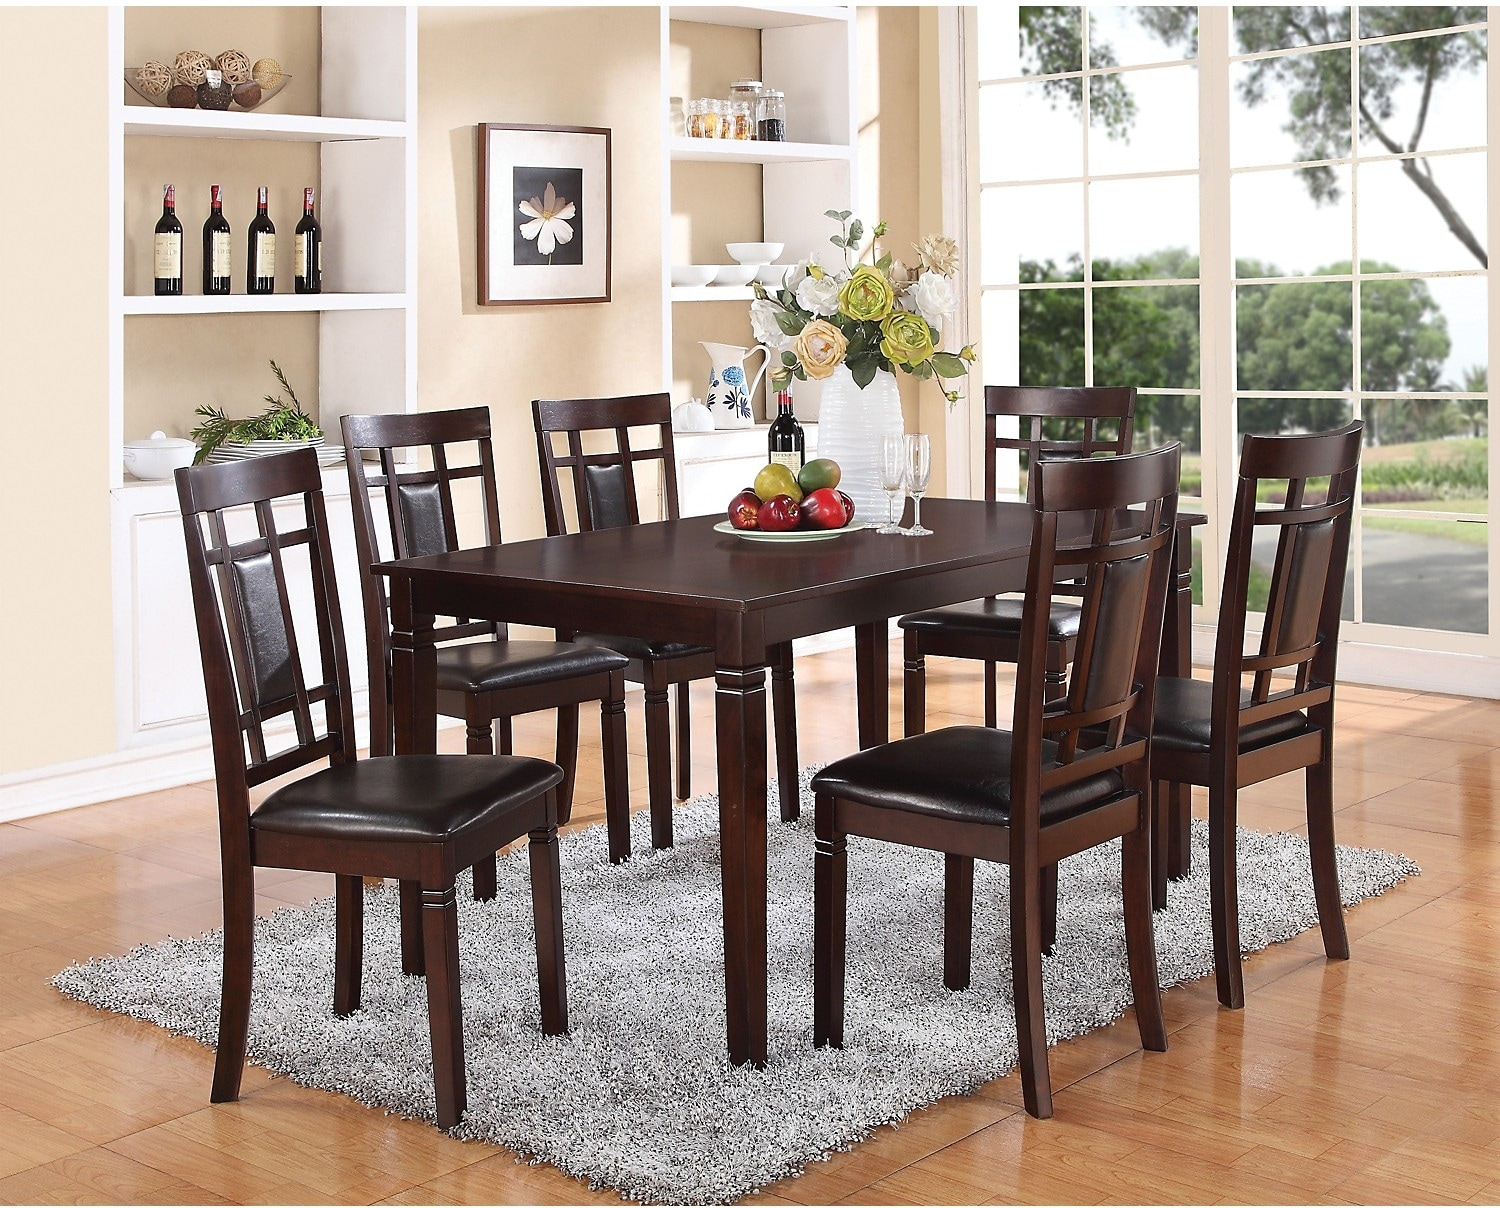 Aran 7 Piece Casual Dining Package The Brick